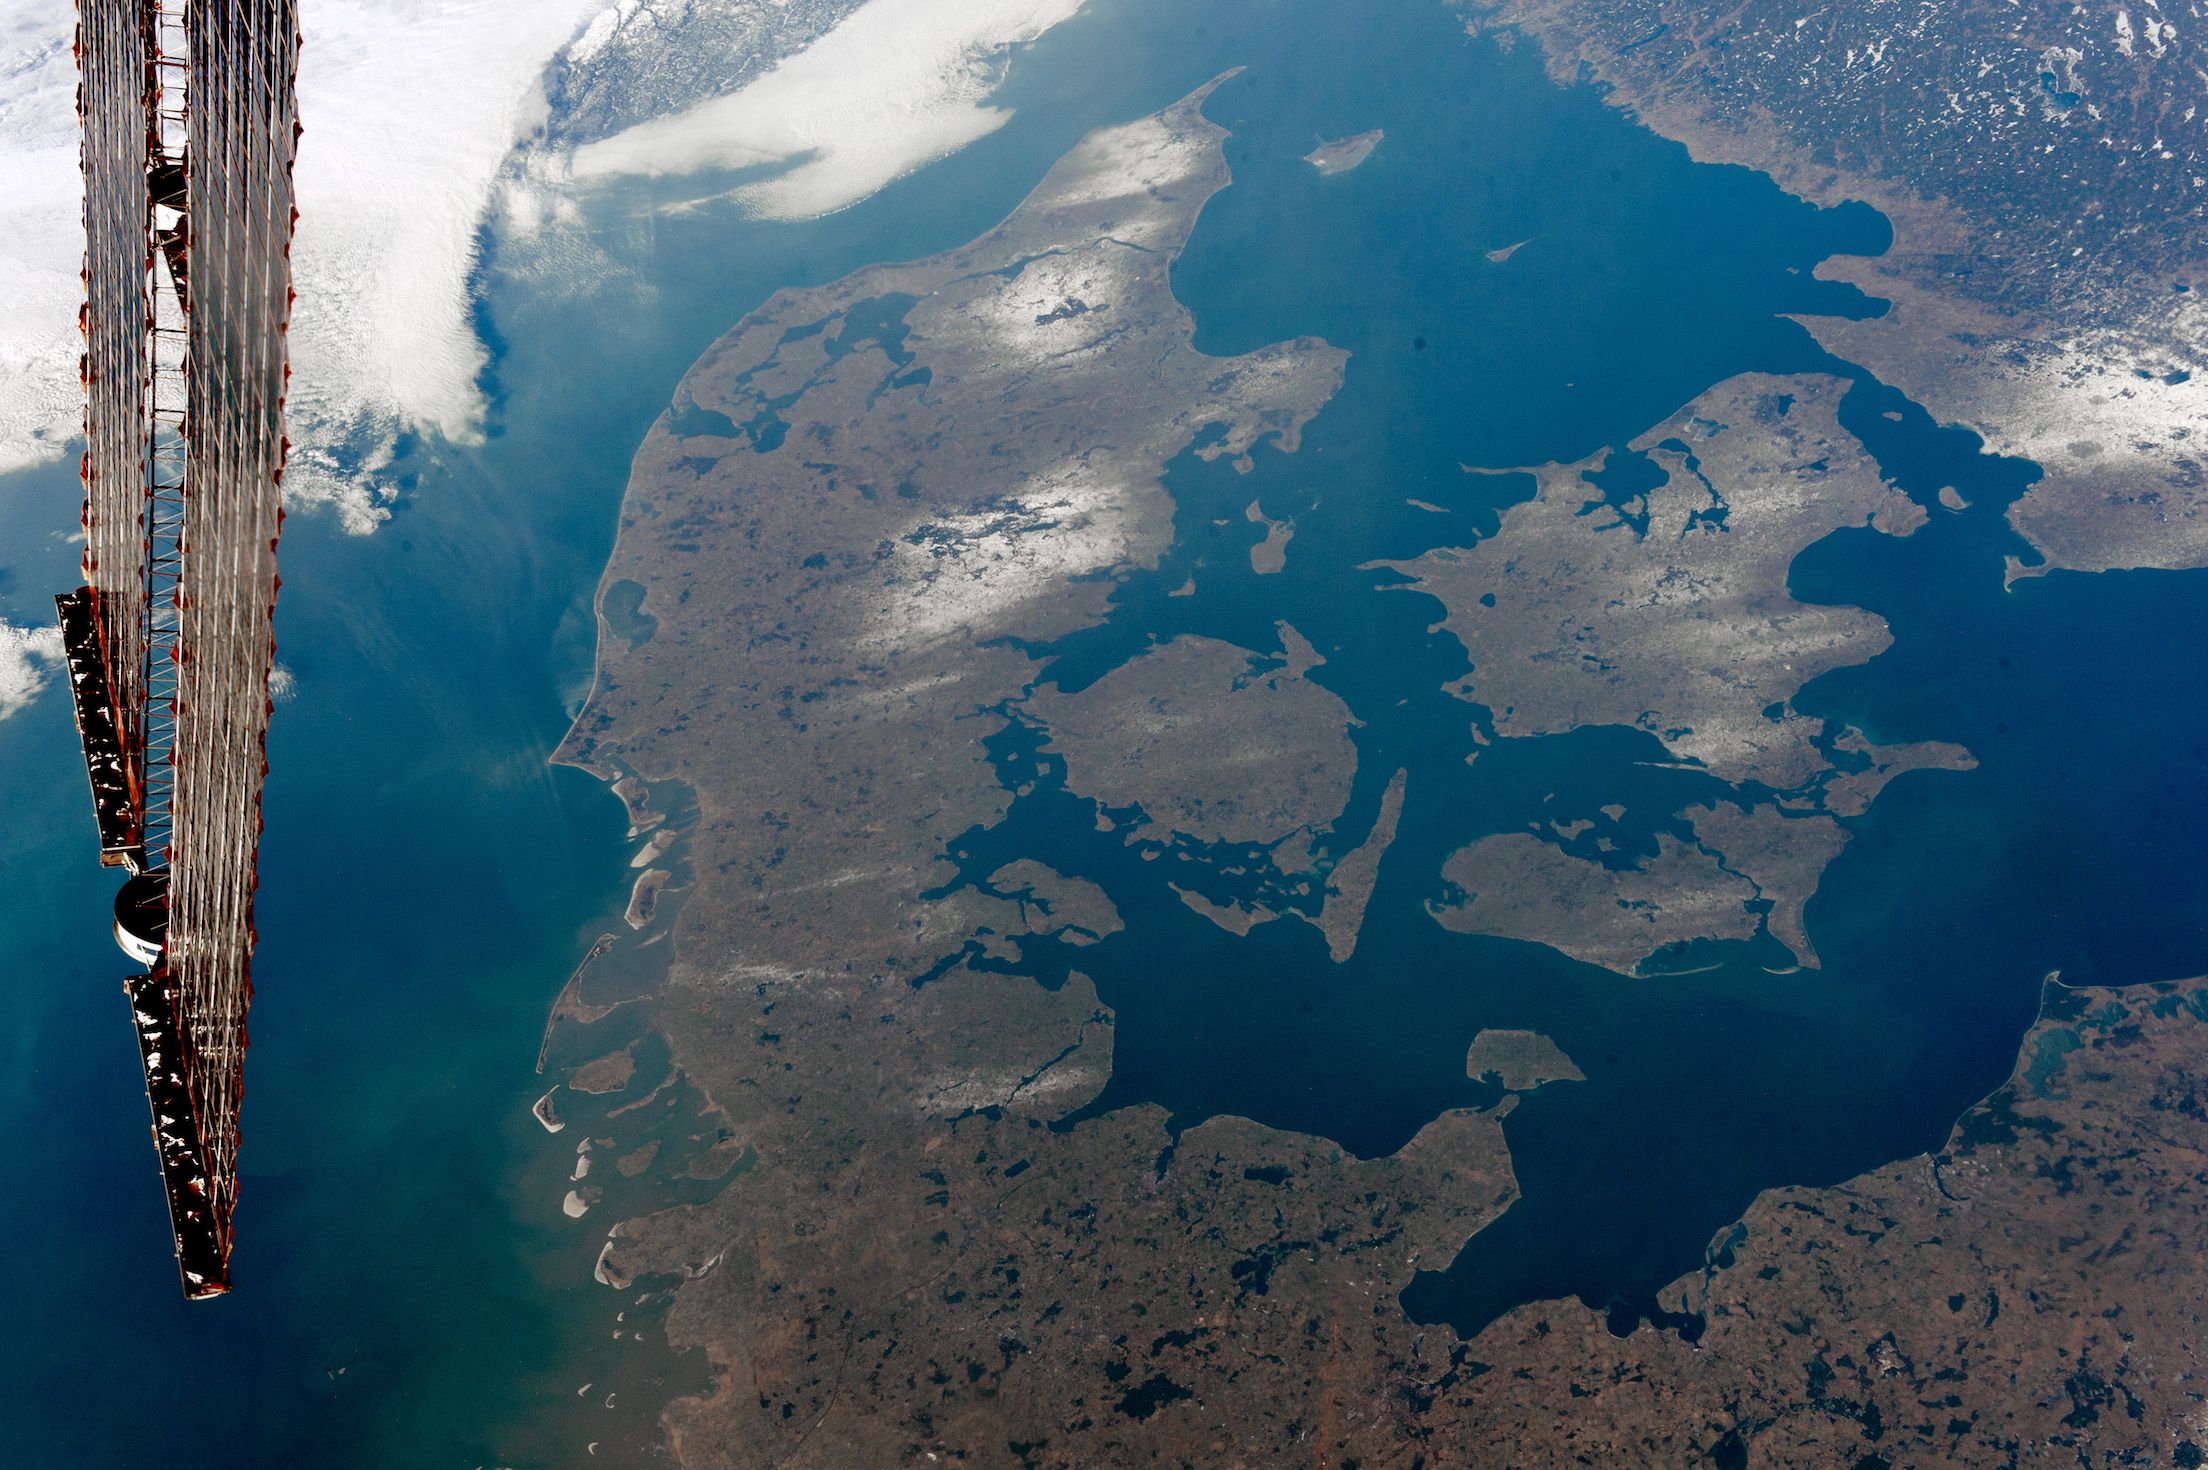 Today's Image of the Day comes courtesy of the NASA Earth Observatory and features a look at Denmark, as seen from the International Space Station.